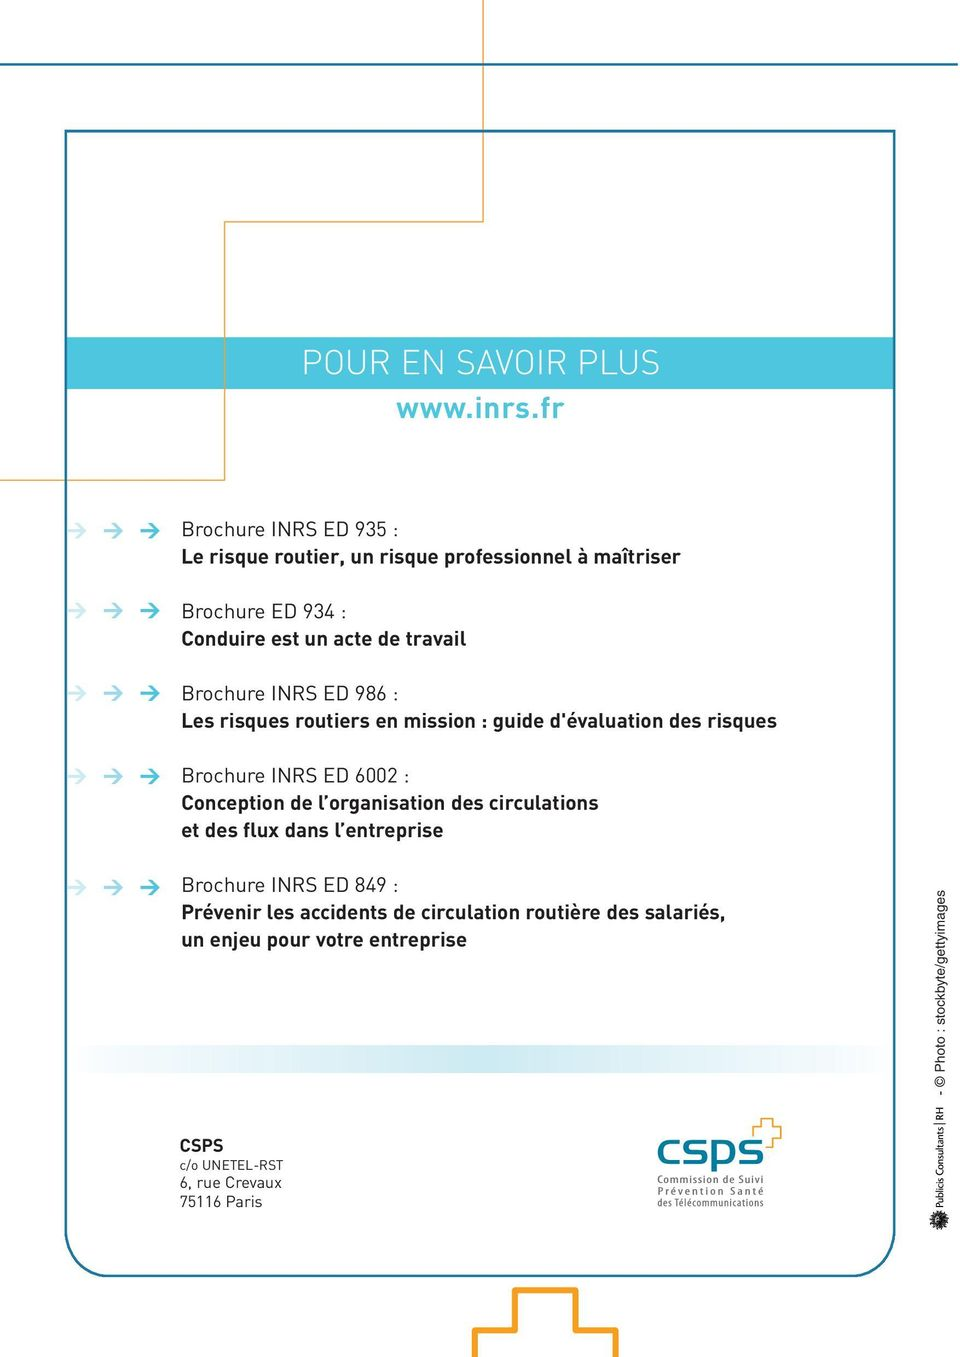 Brochure INRS ED 986 : Les risques routiers en mission : guide d'évaluation des risques Brochure INRS ED 6002 : Conception de l